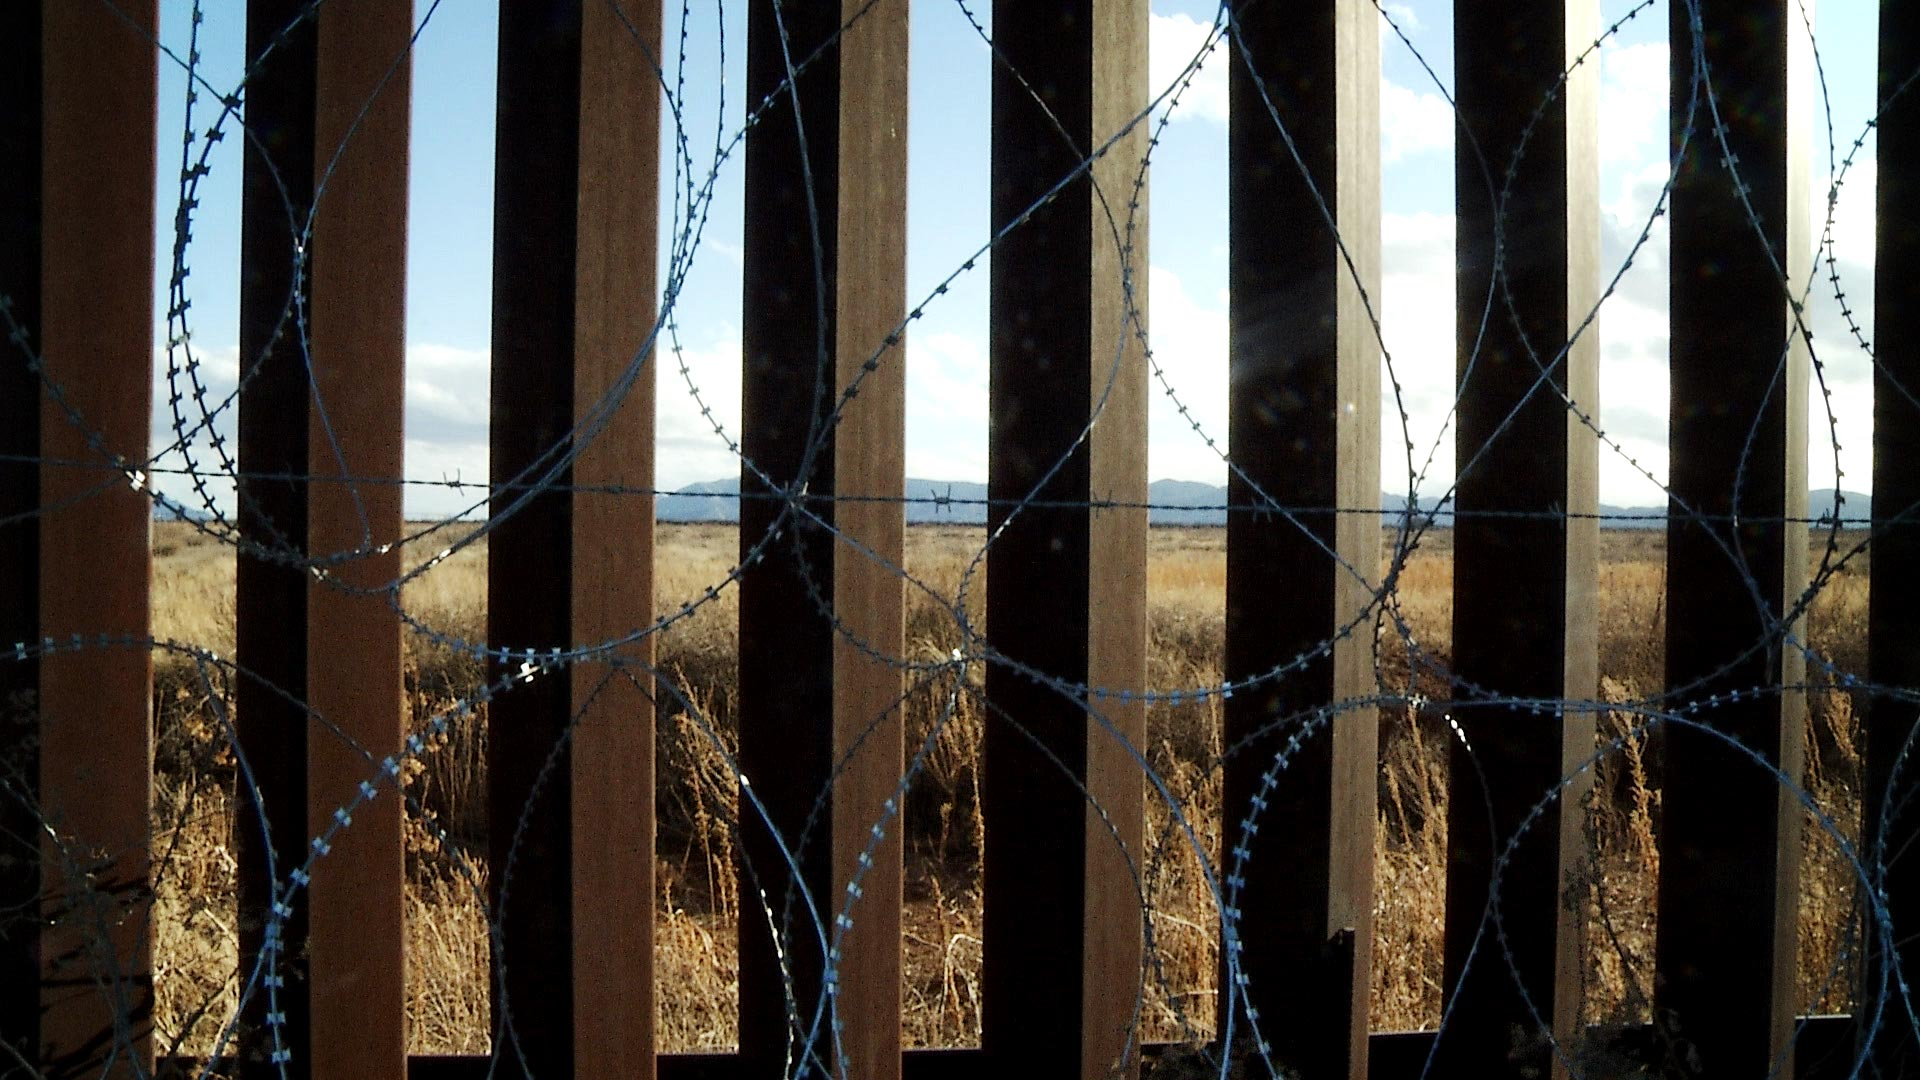 Border wall fencing with concertina wire attached in Douglas, Ariz. January 2021.